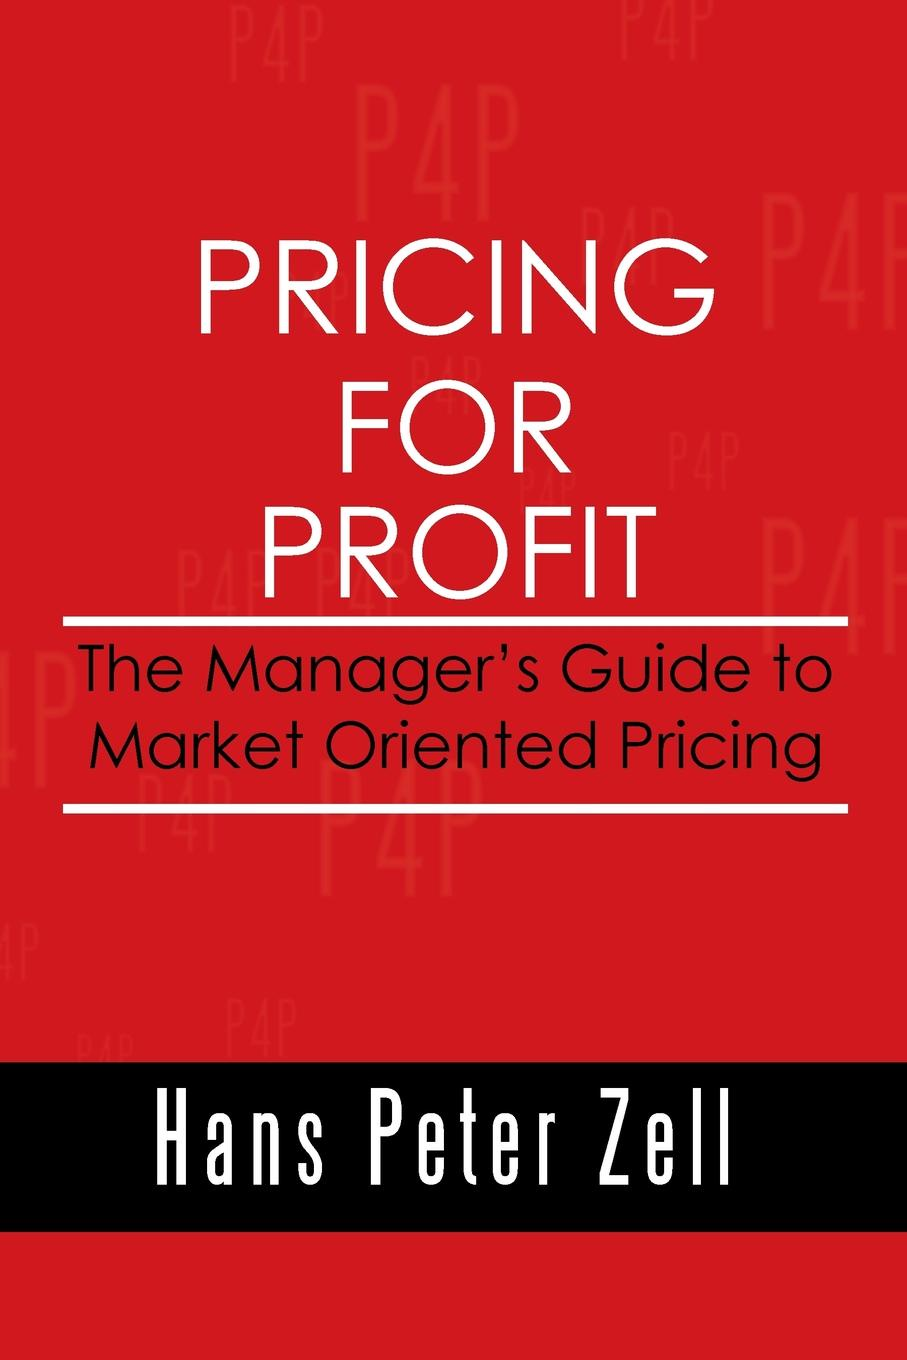 Hans Peter Zell Pricing for Profit. The Manager's Guide to Market Oriented Pricing bubendorfer kris market oriented grid and utility computing